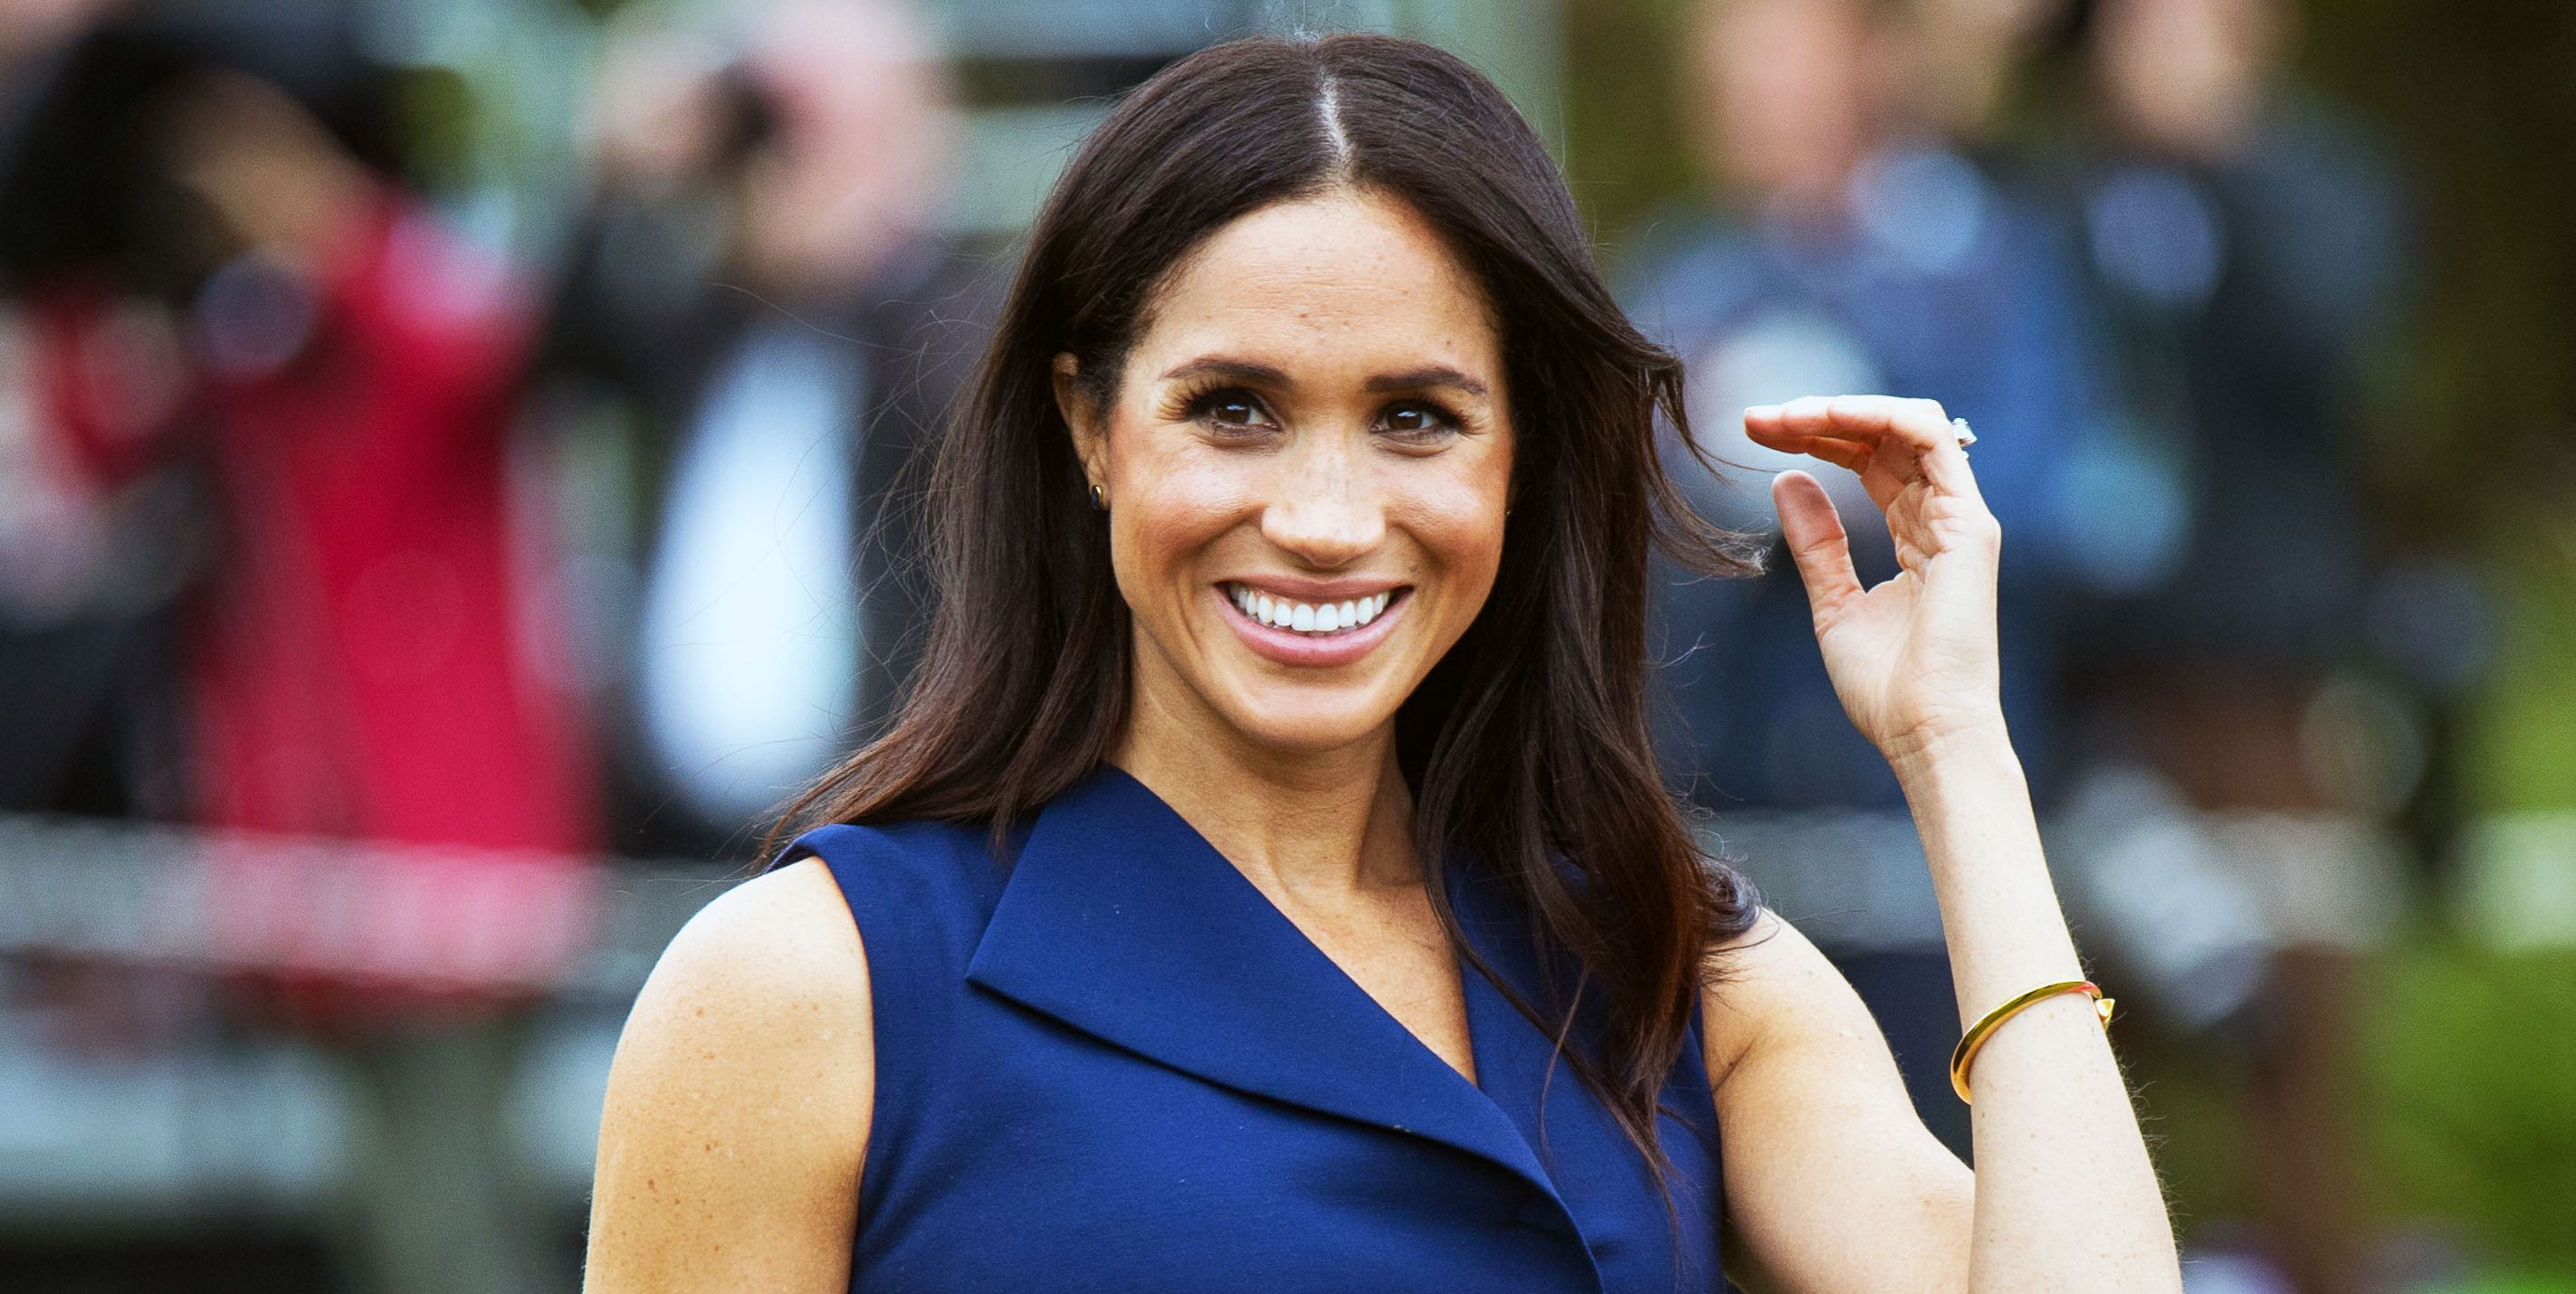 The Royal Horticultural Society named this flower after the Duchess of Sussex